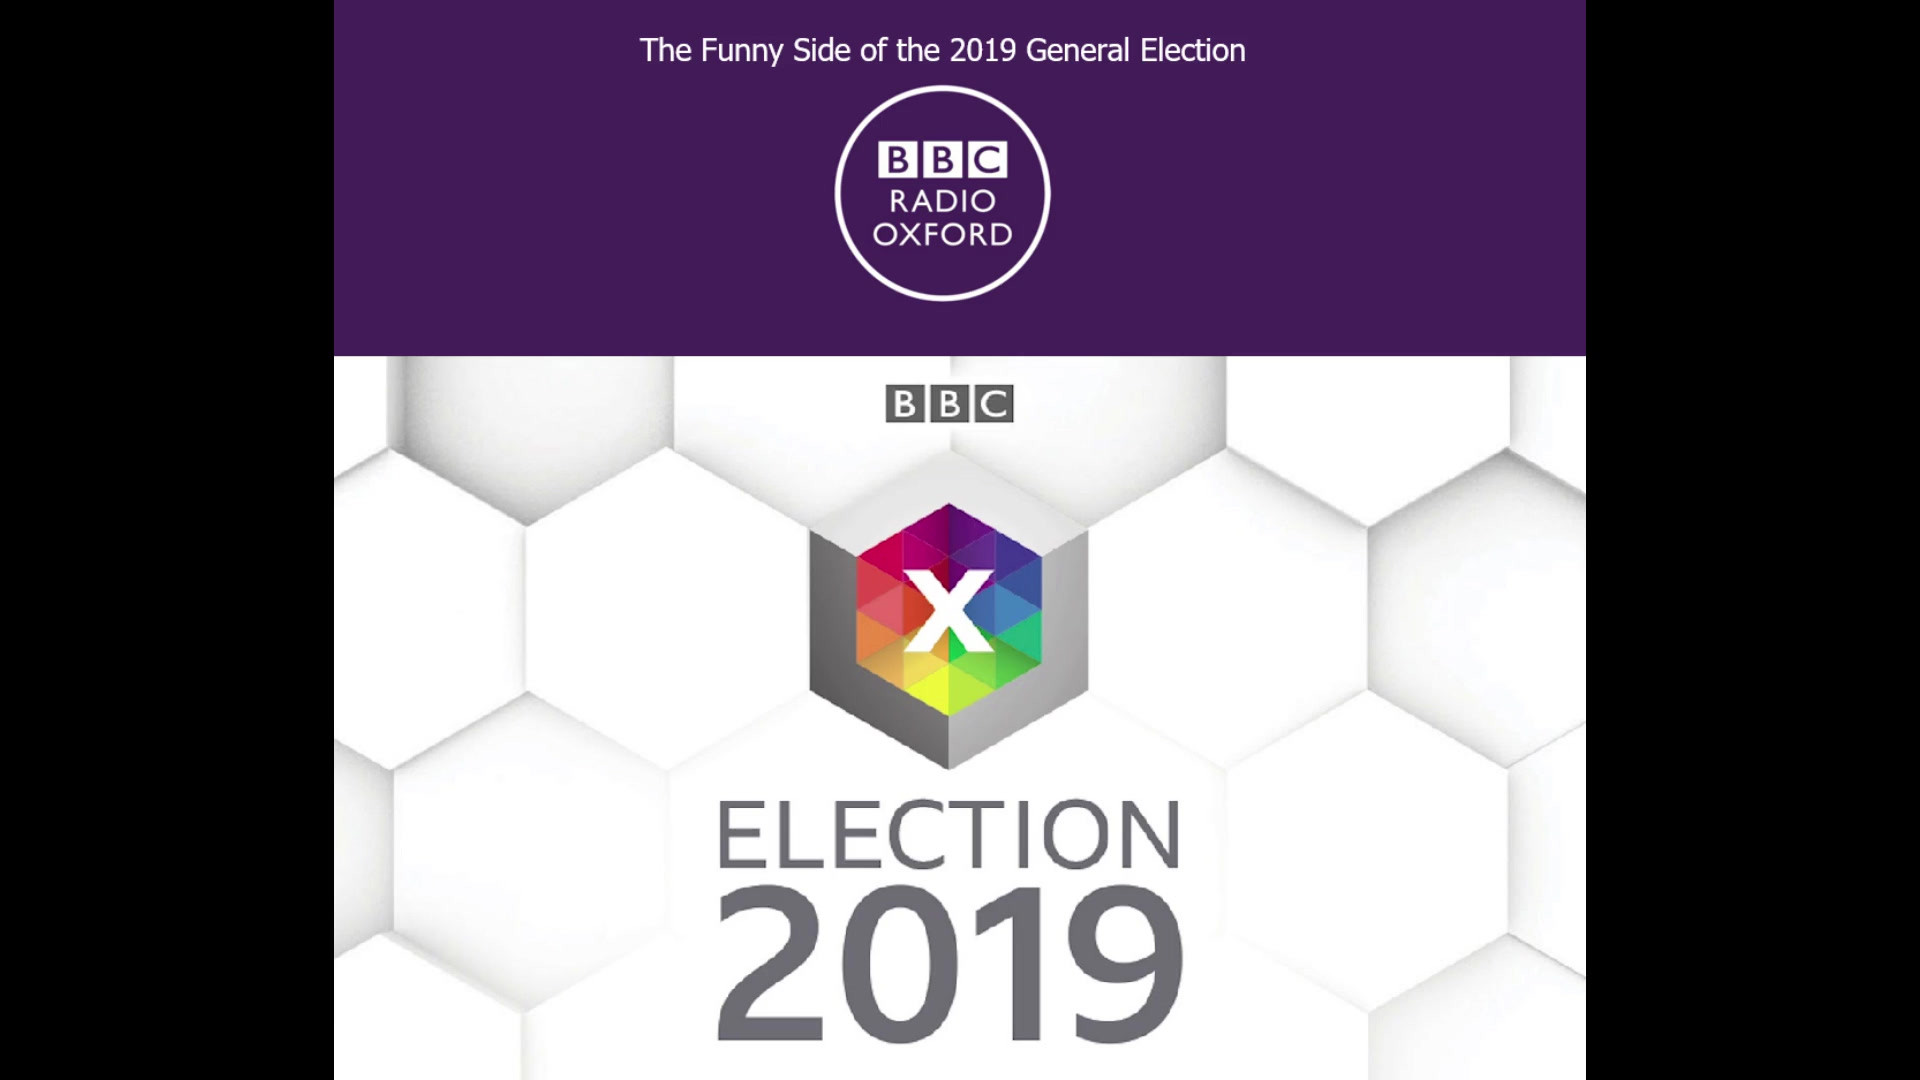 The Funny Side of the 2019 General Election